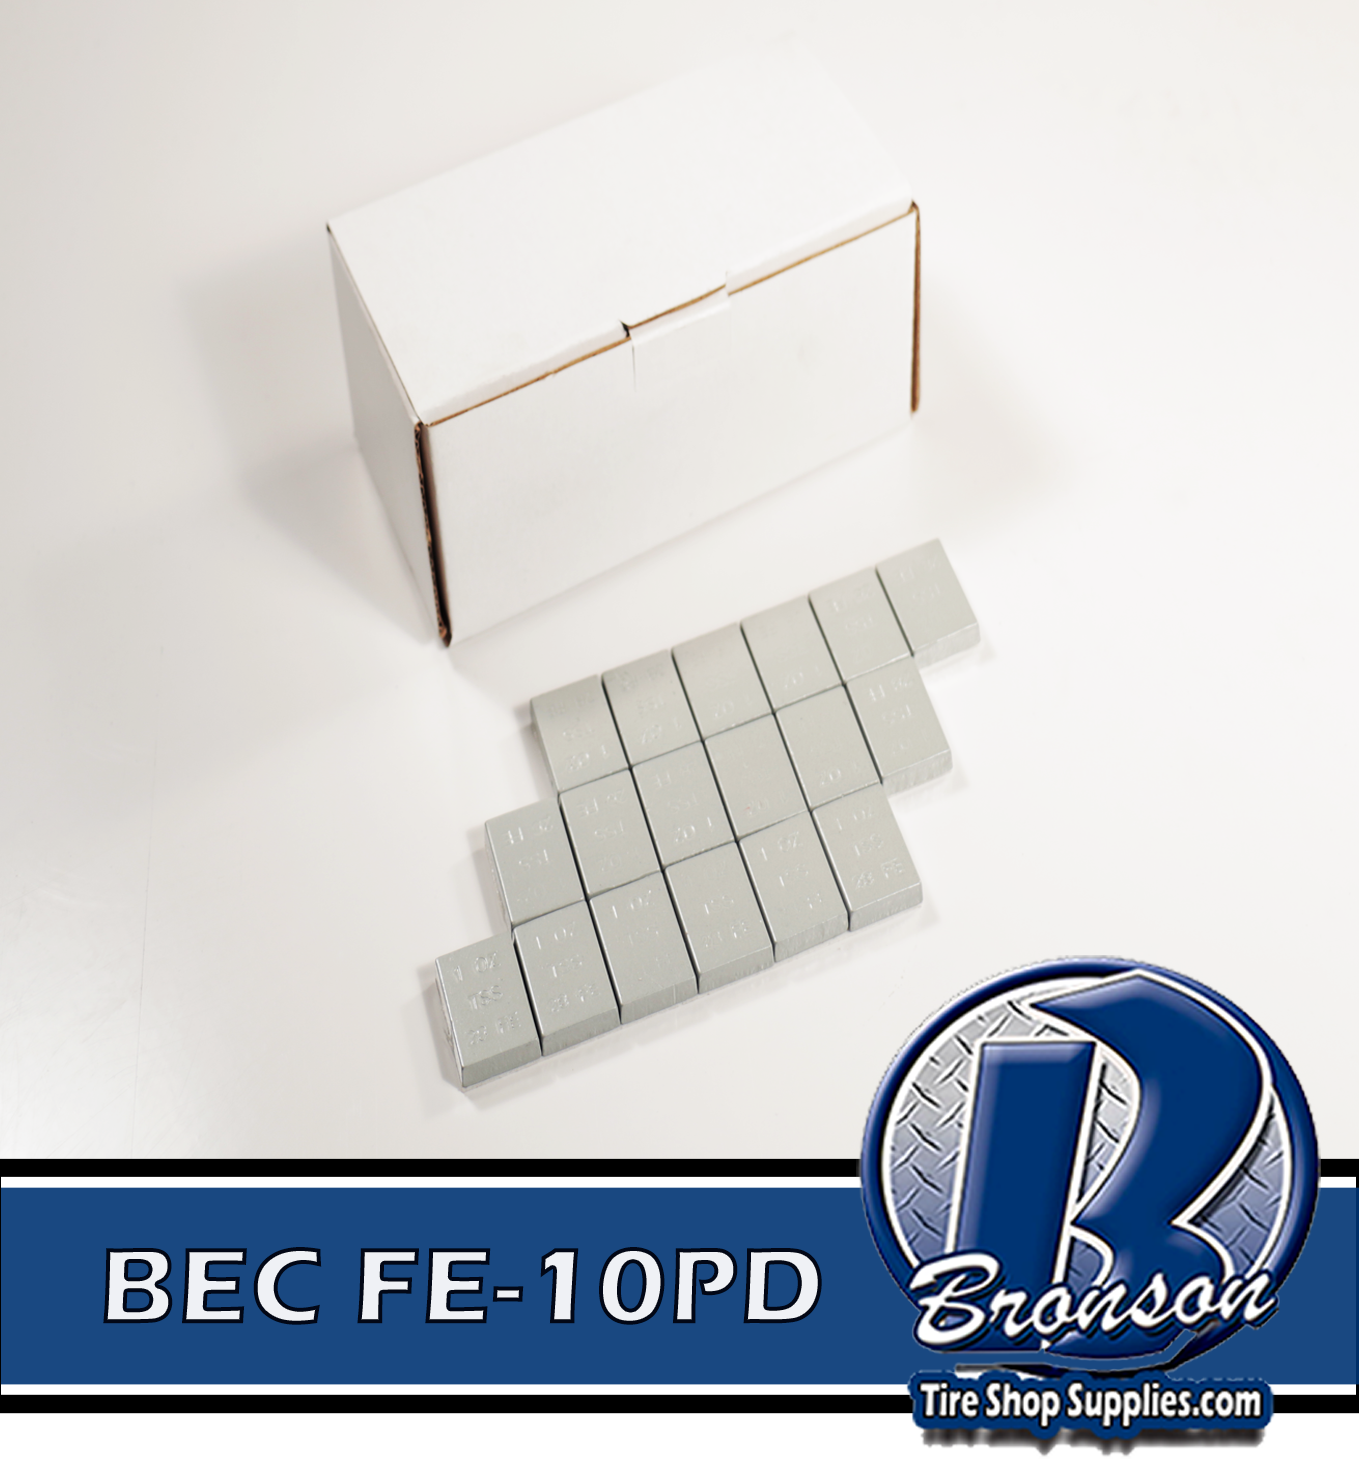 BEC FE-10PD 1oz FE Tape W